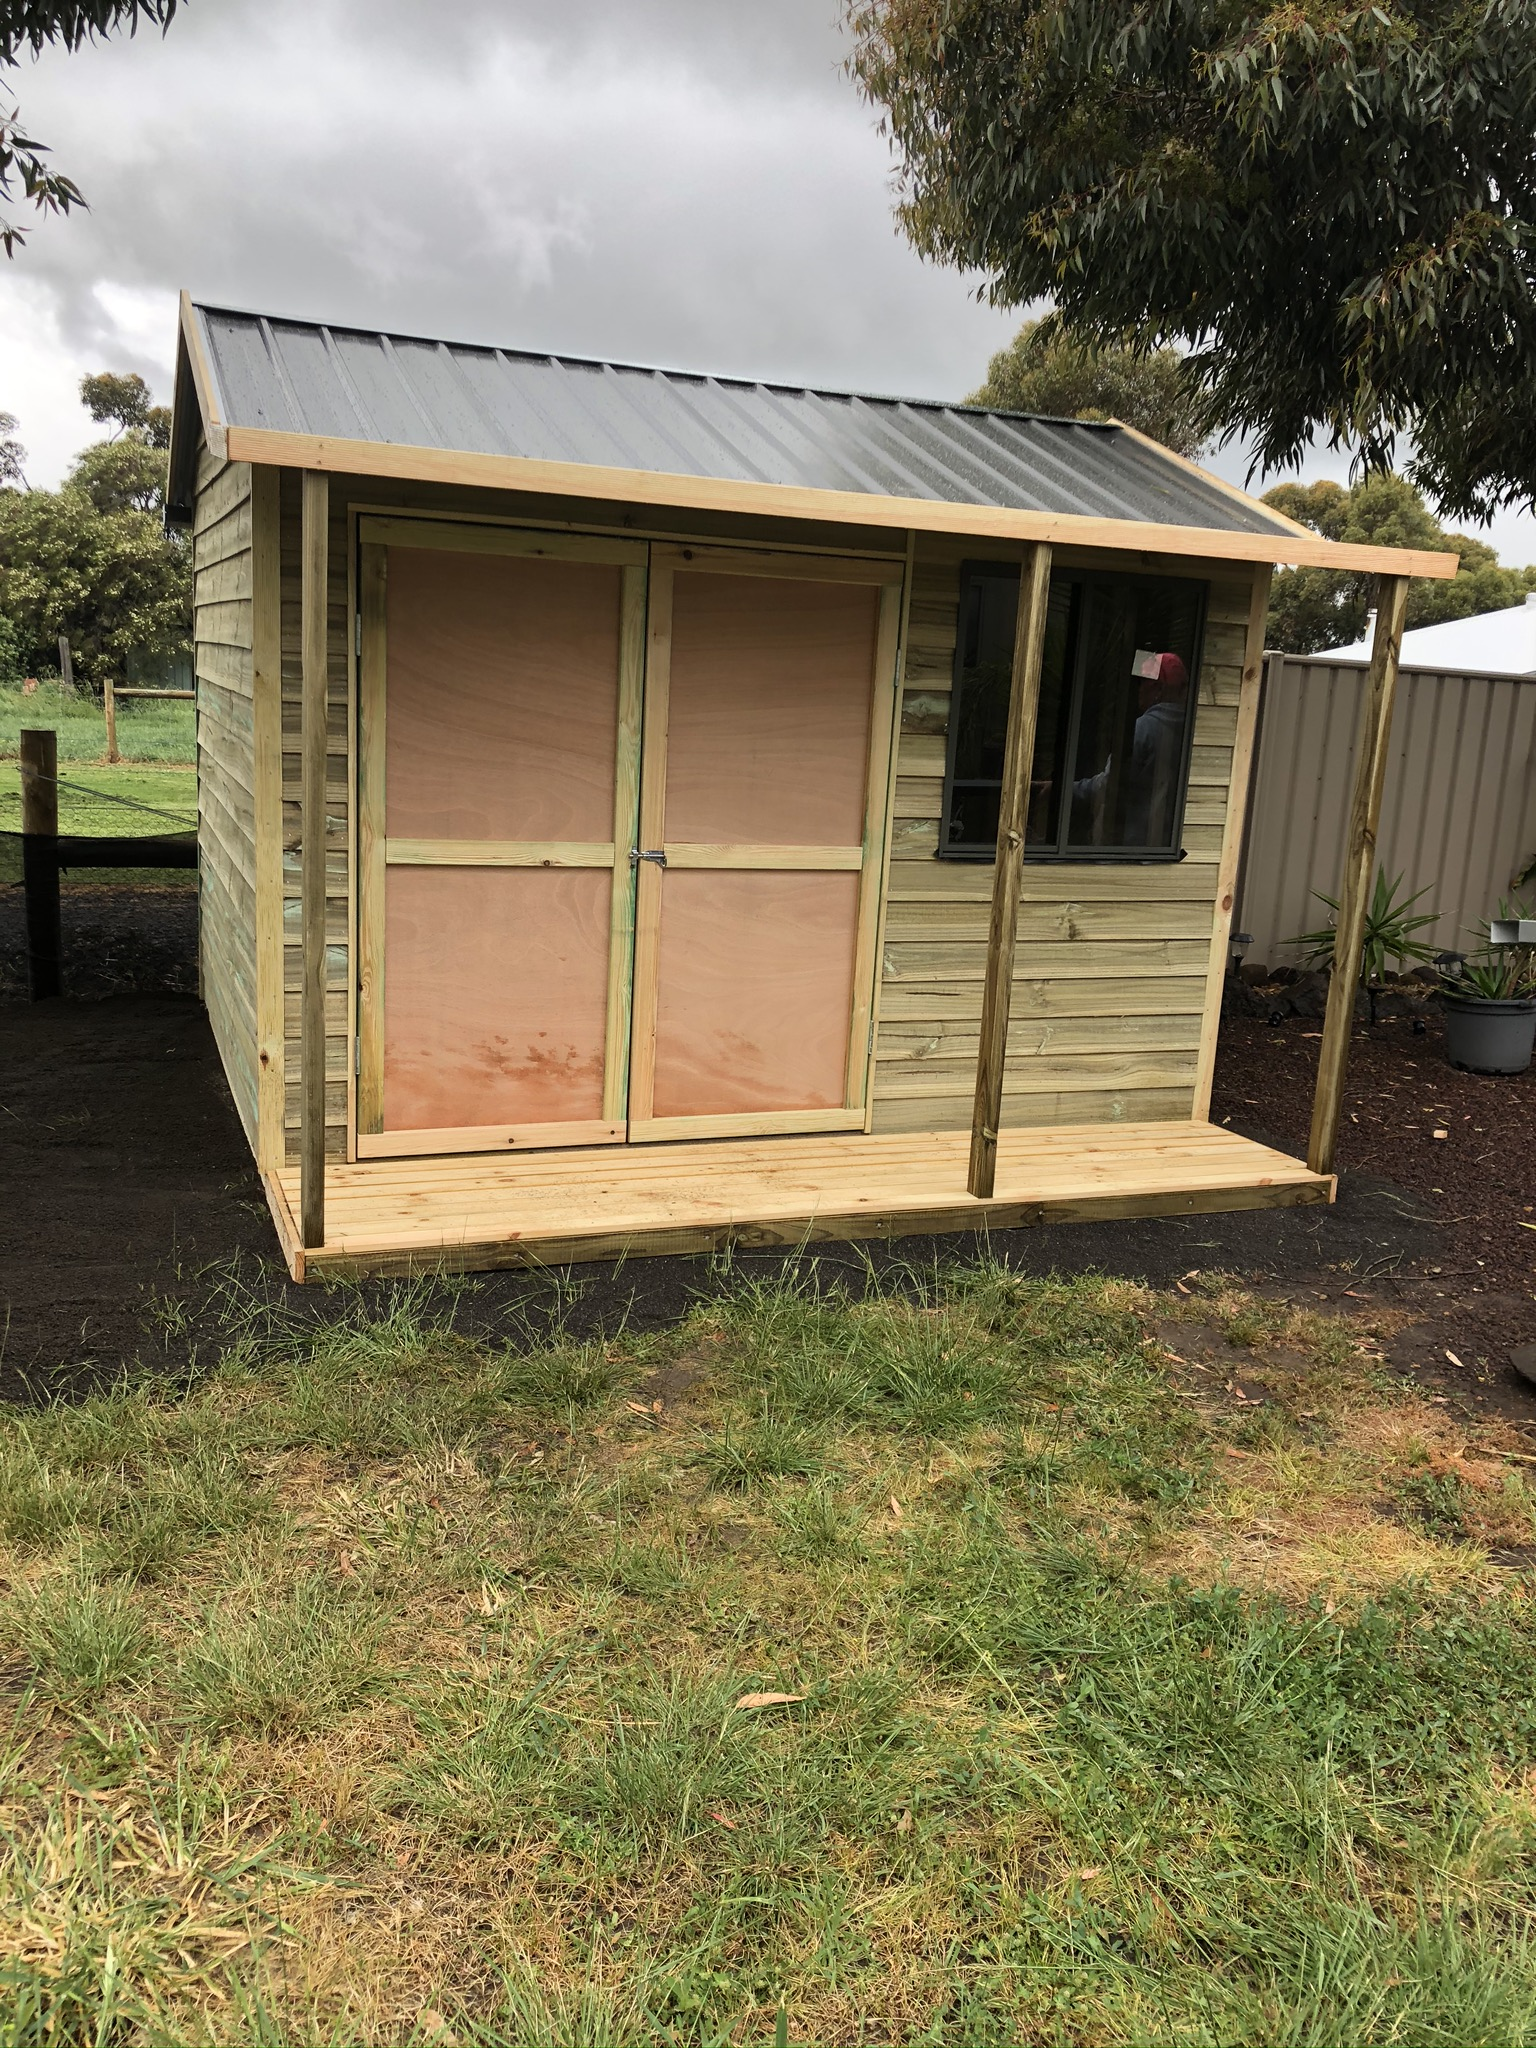 Wooden Gable Shed with Verandah